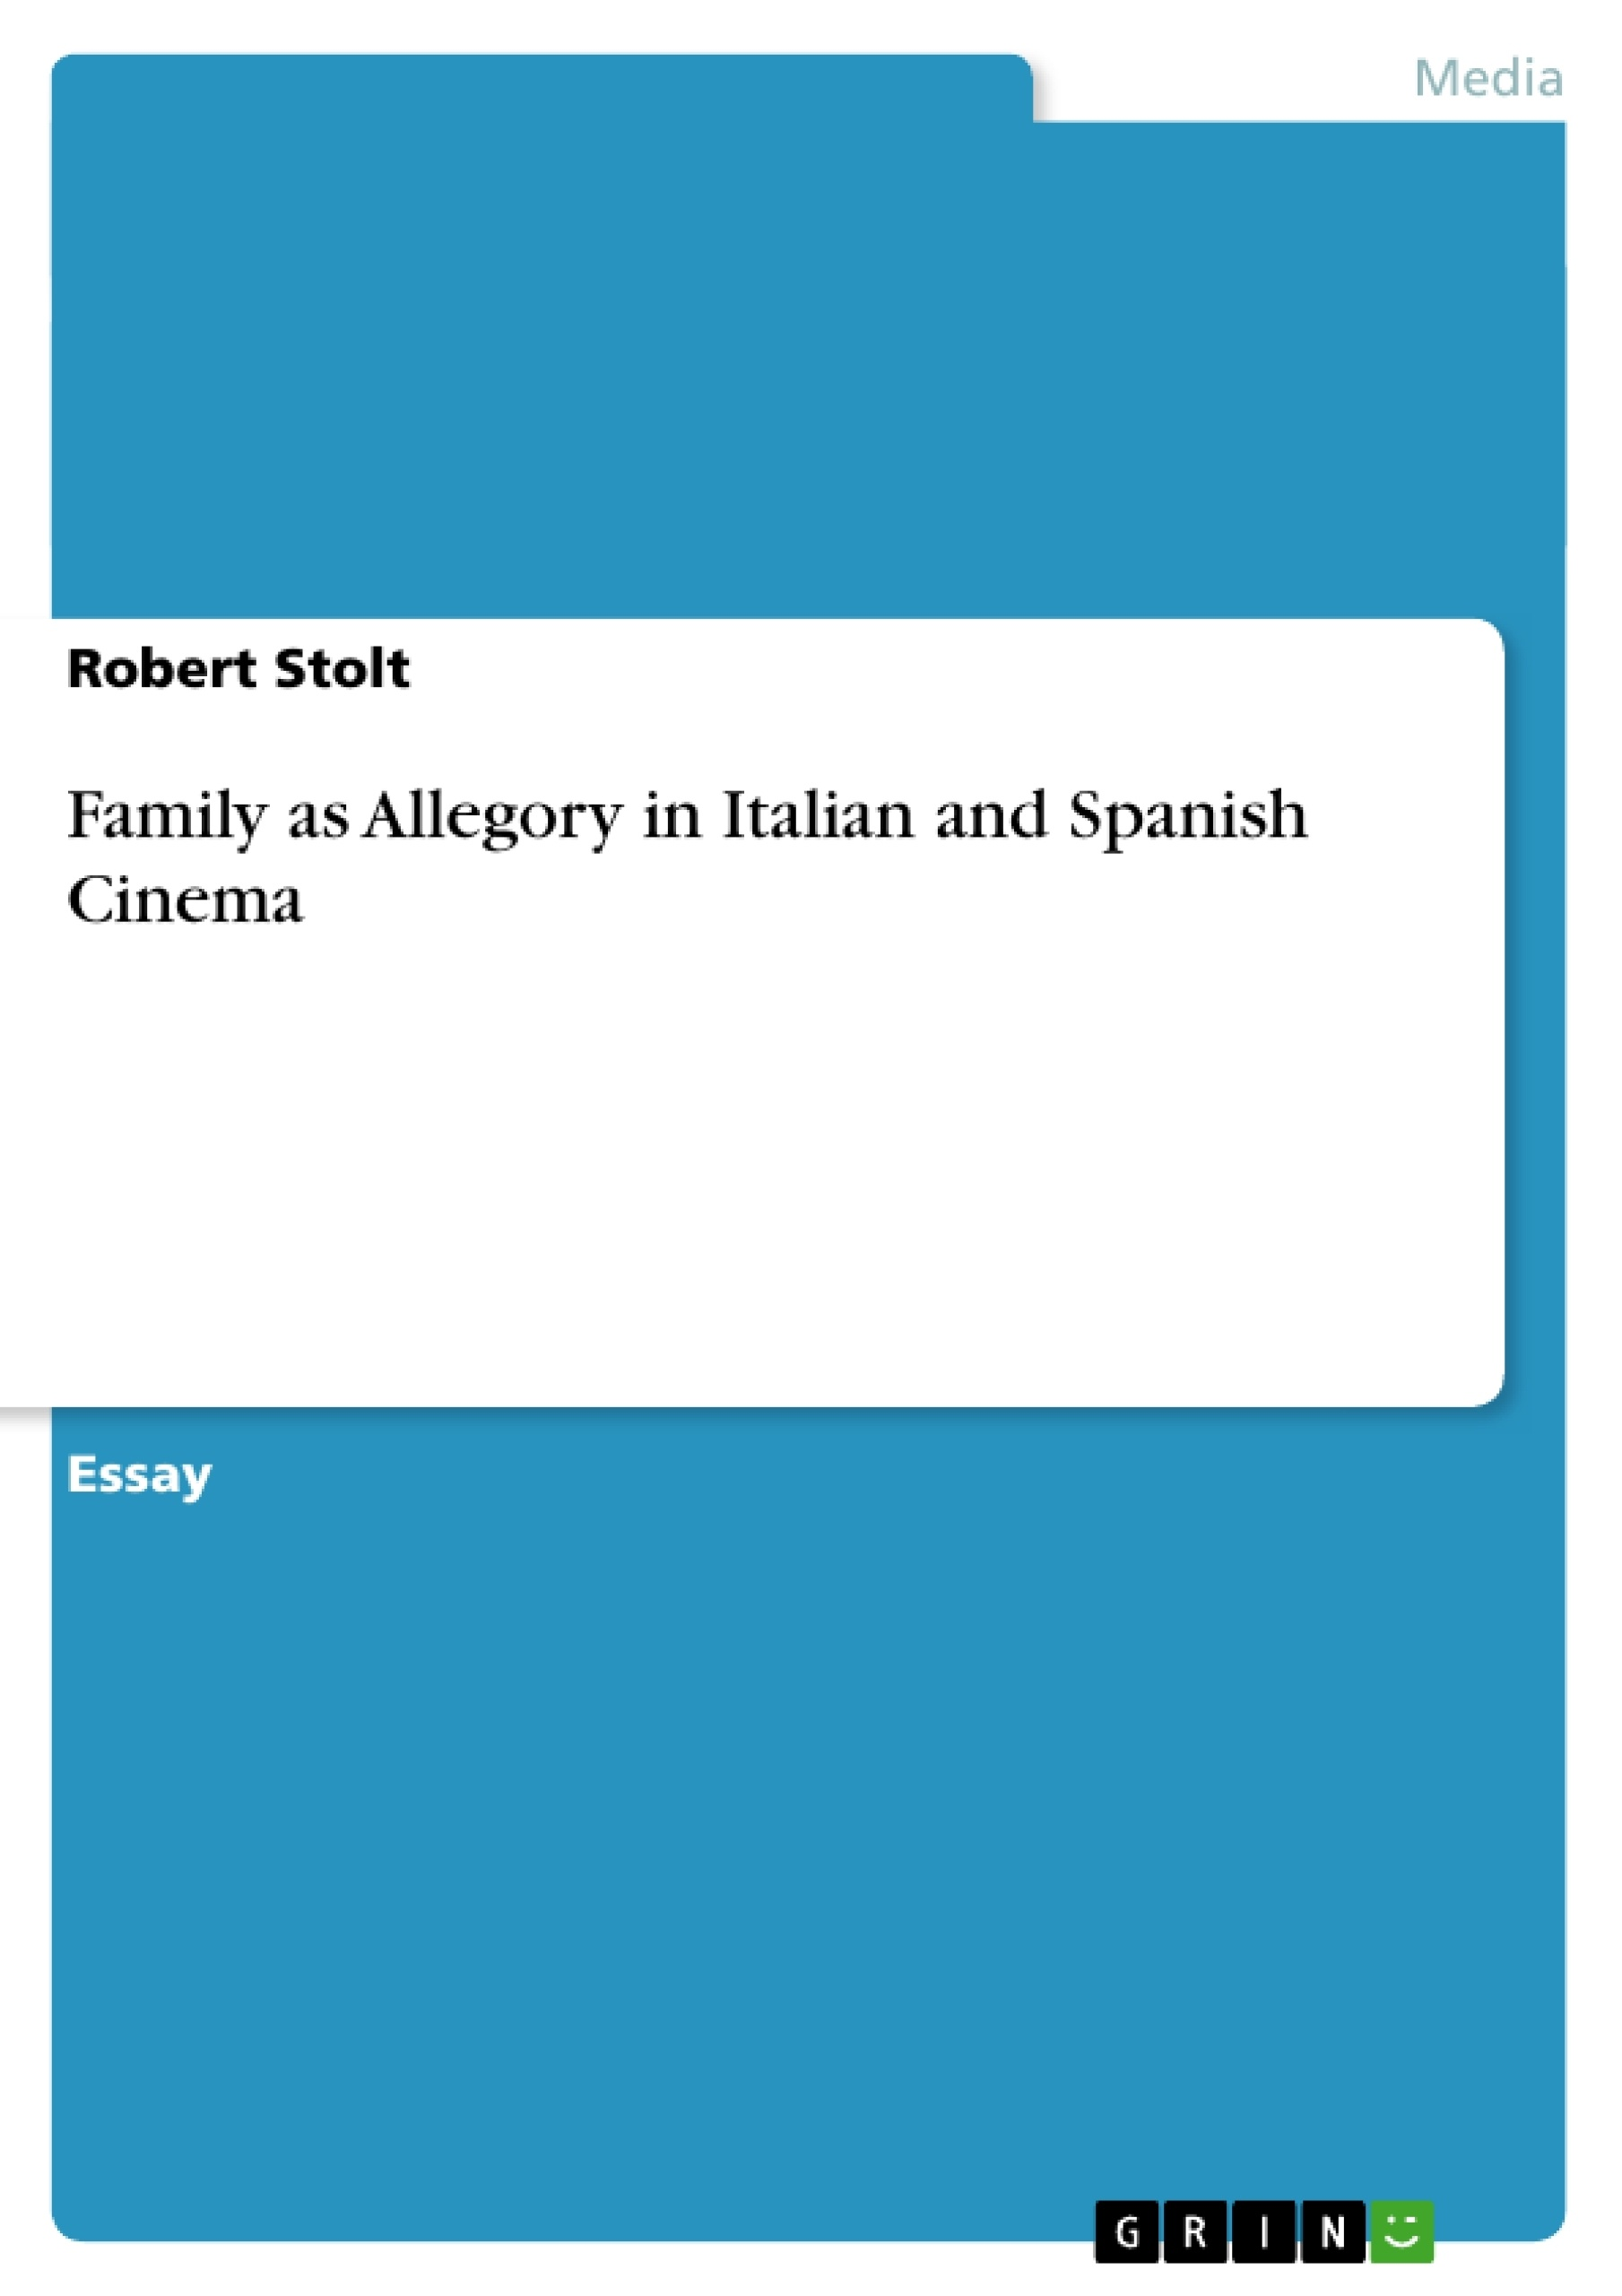 Title: Family as Allegory in Italian and Spanish Cinema